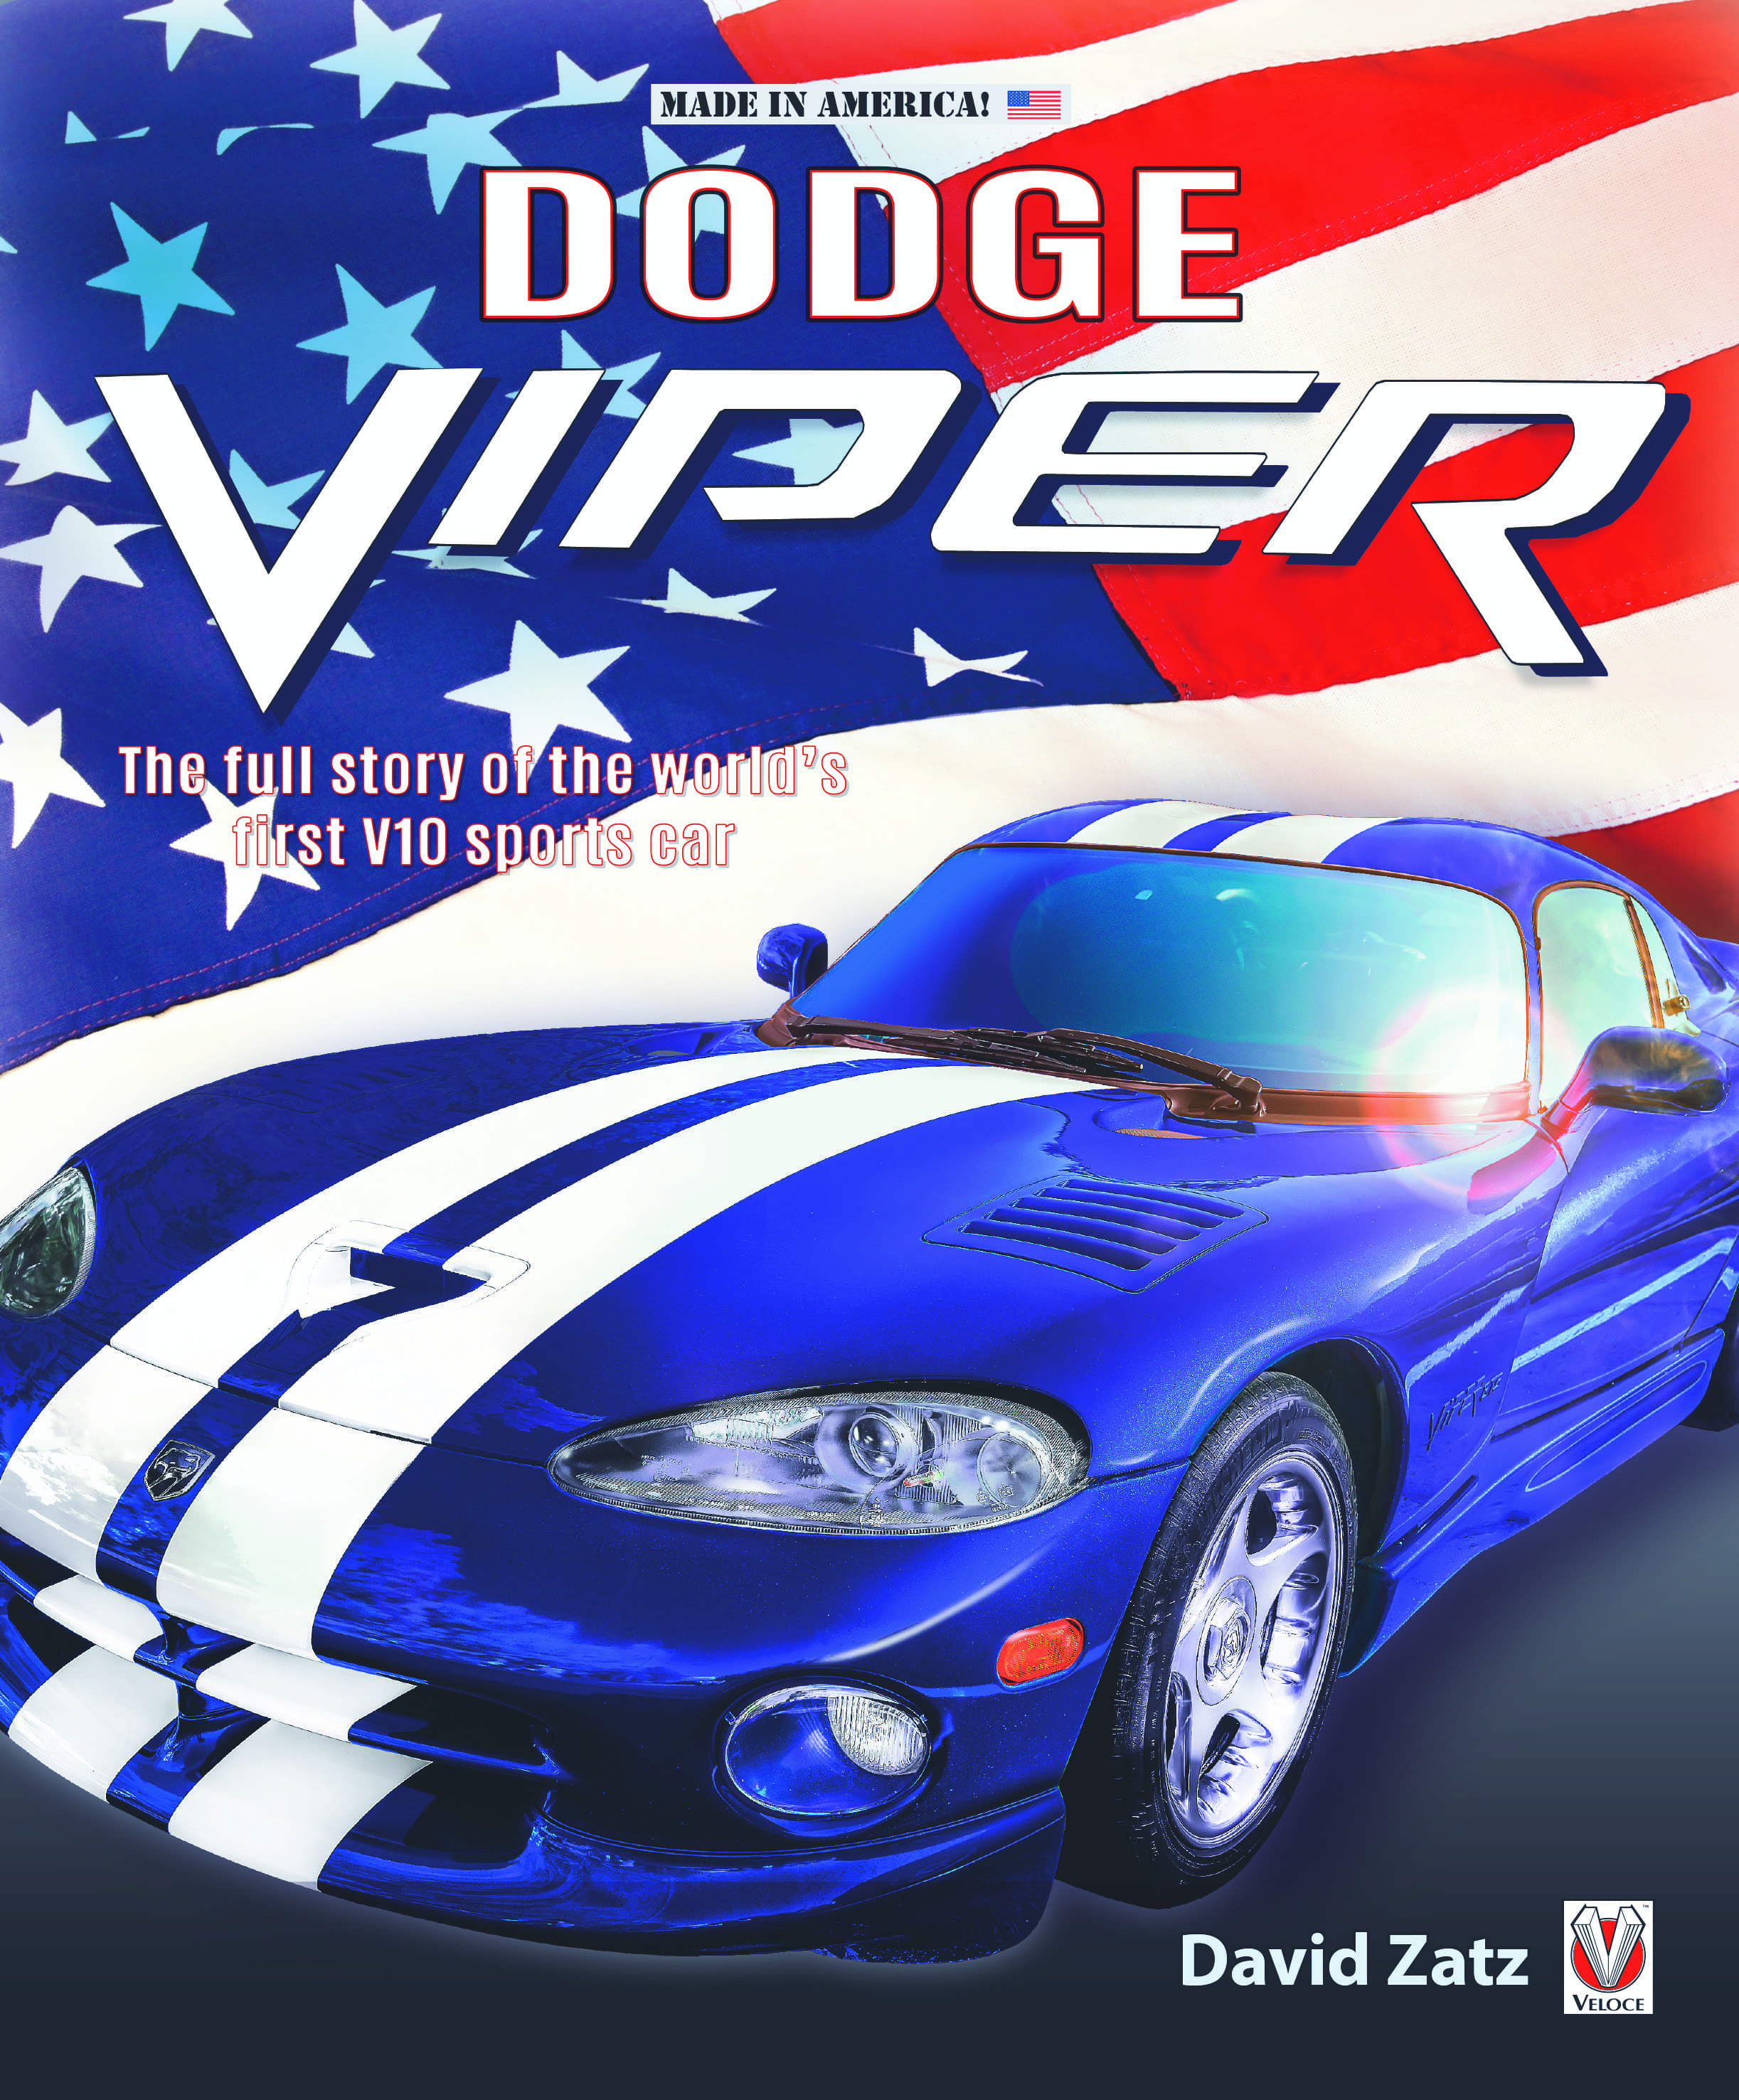 Dodge Viper – The full story of the world's first V10 sports car